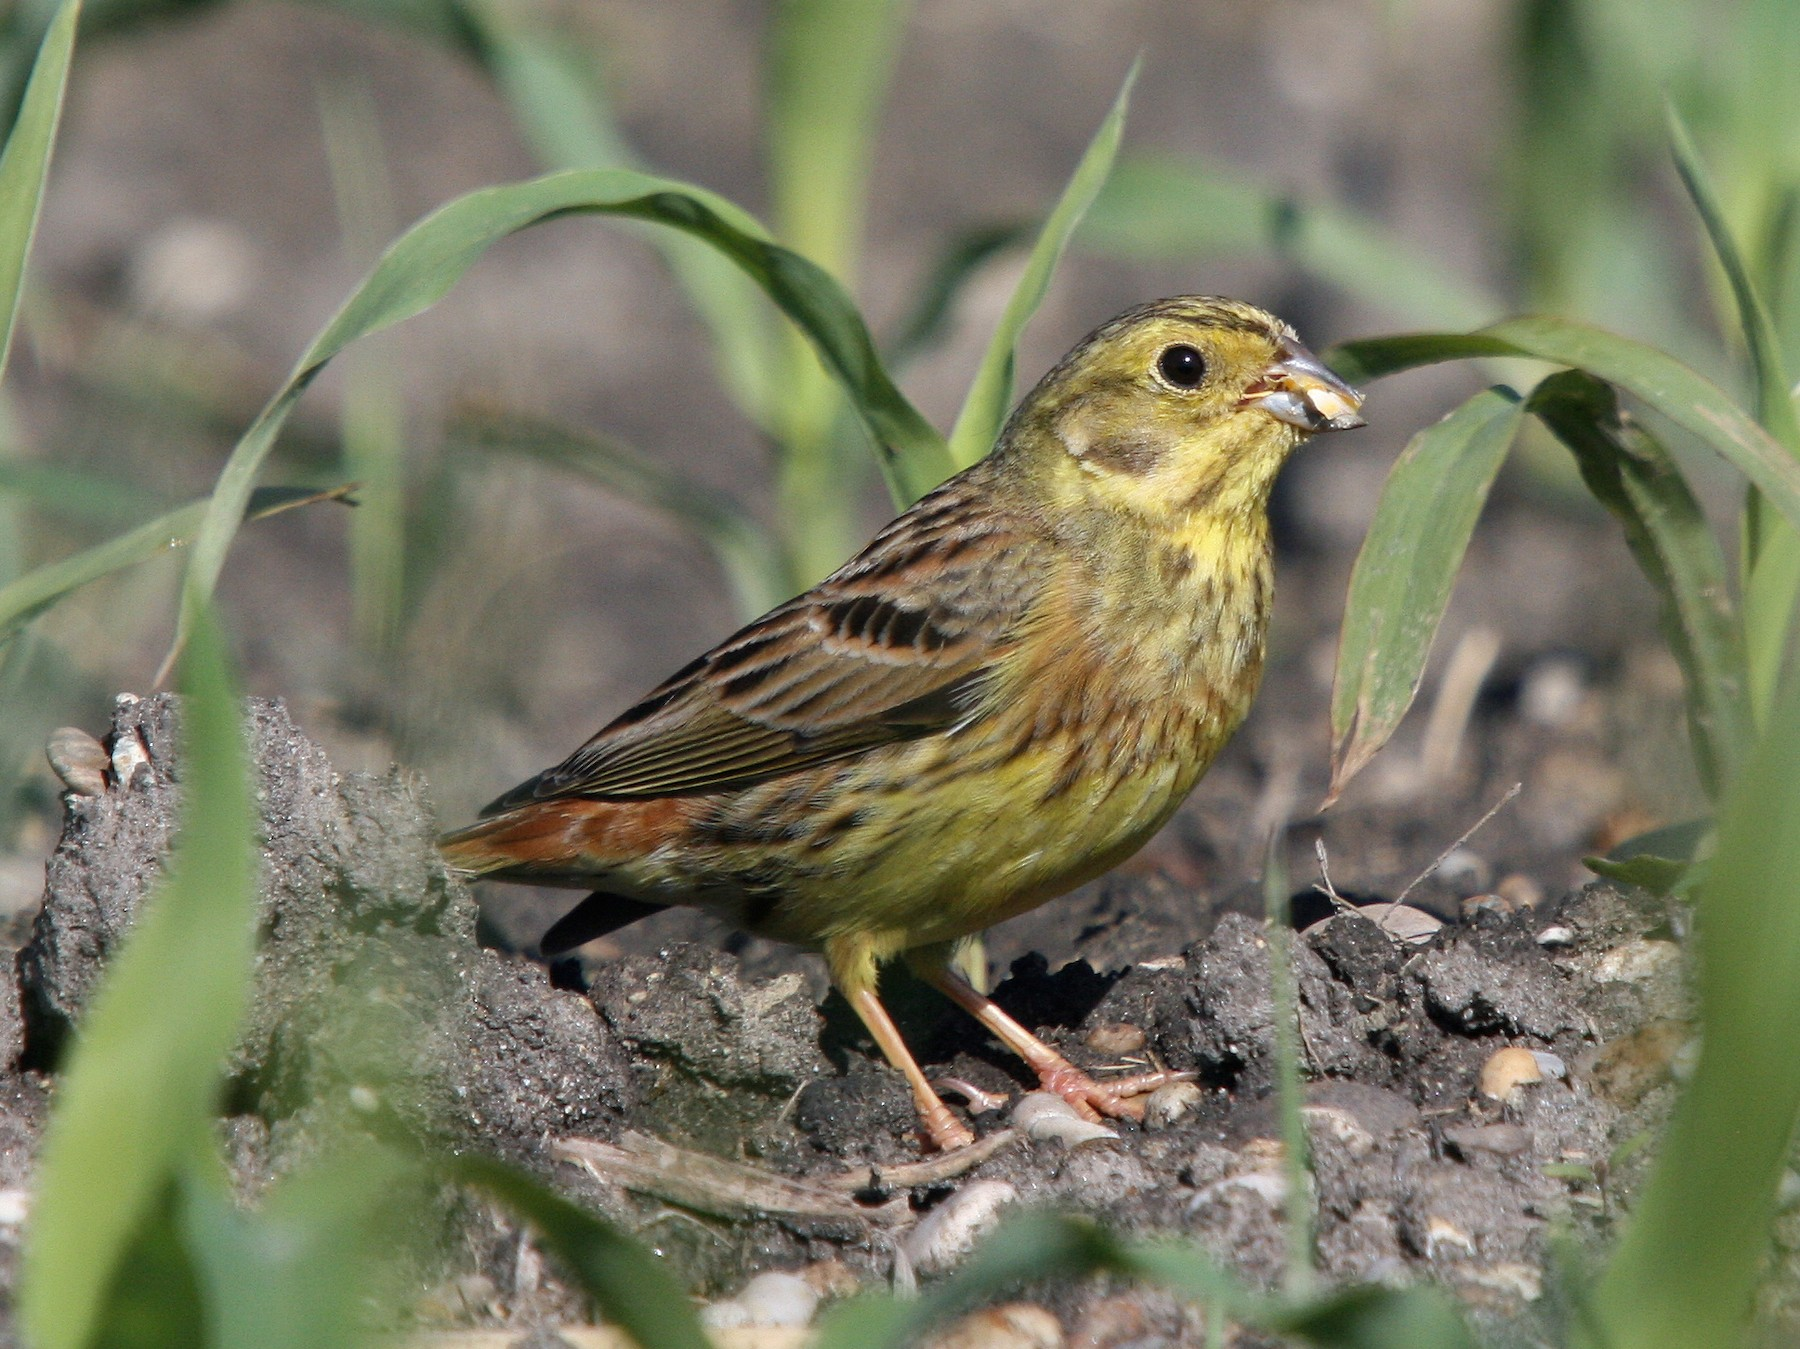 Yellowhammer - Christoph Moning